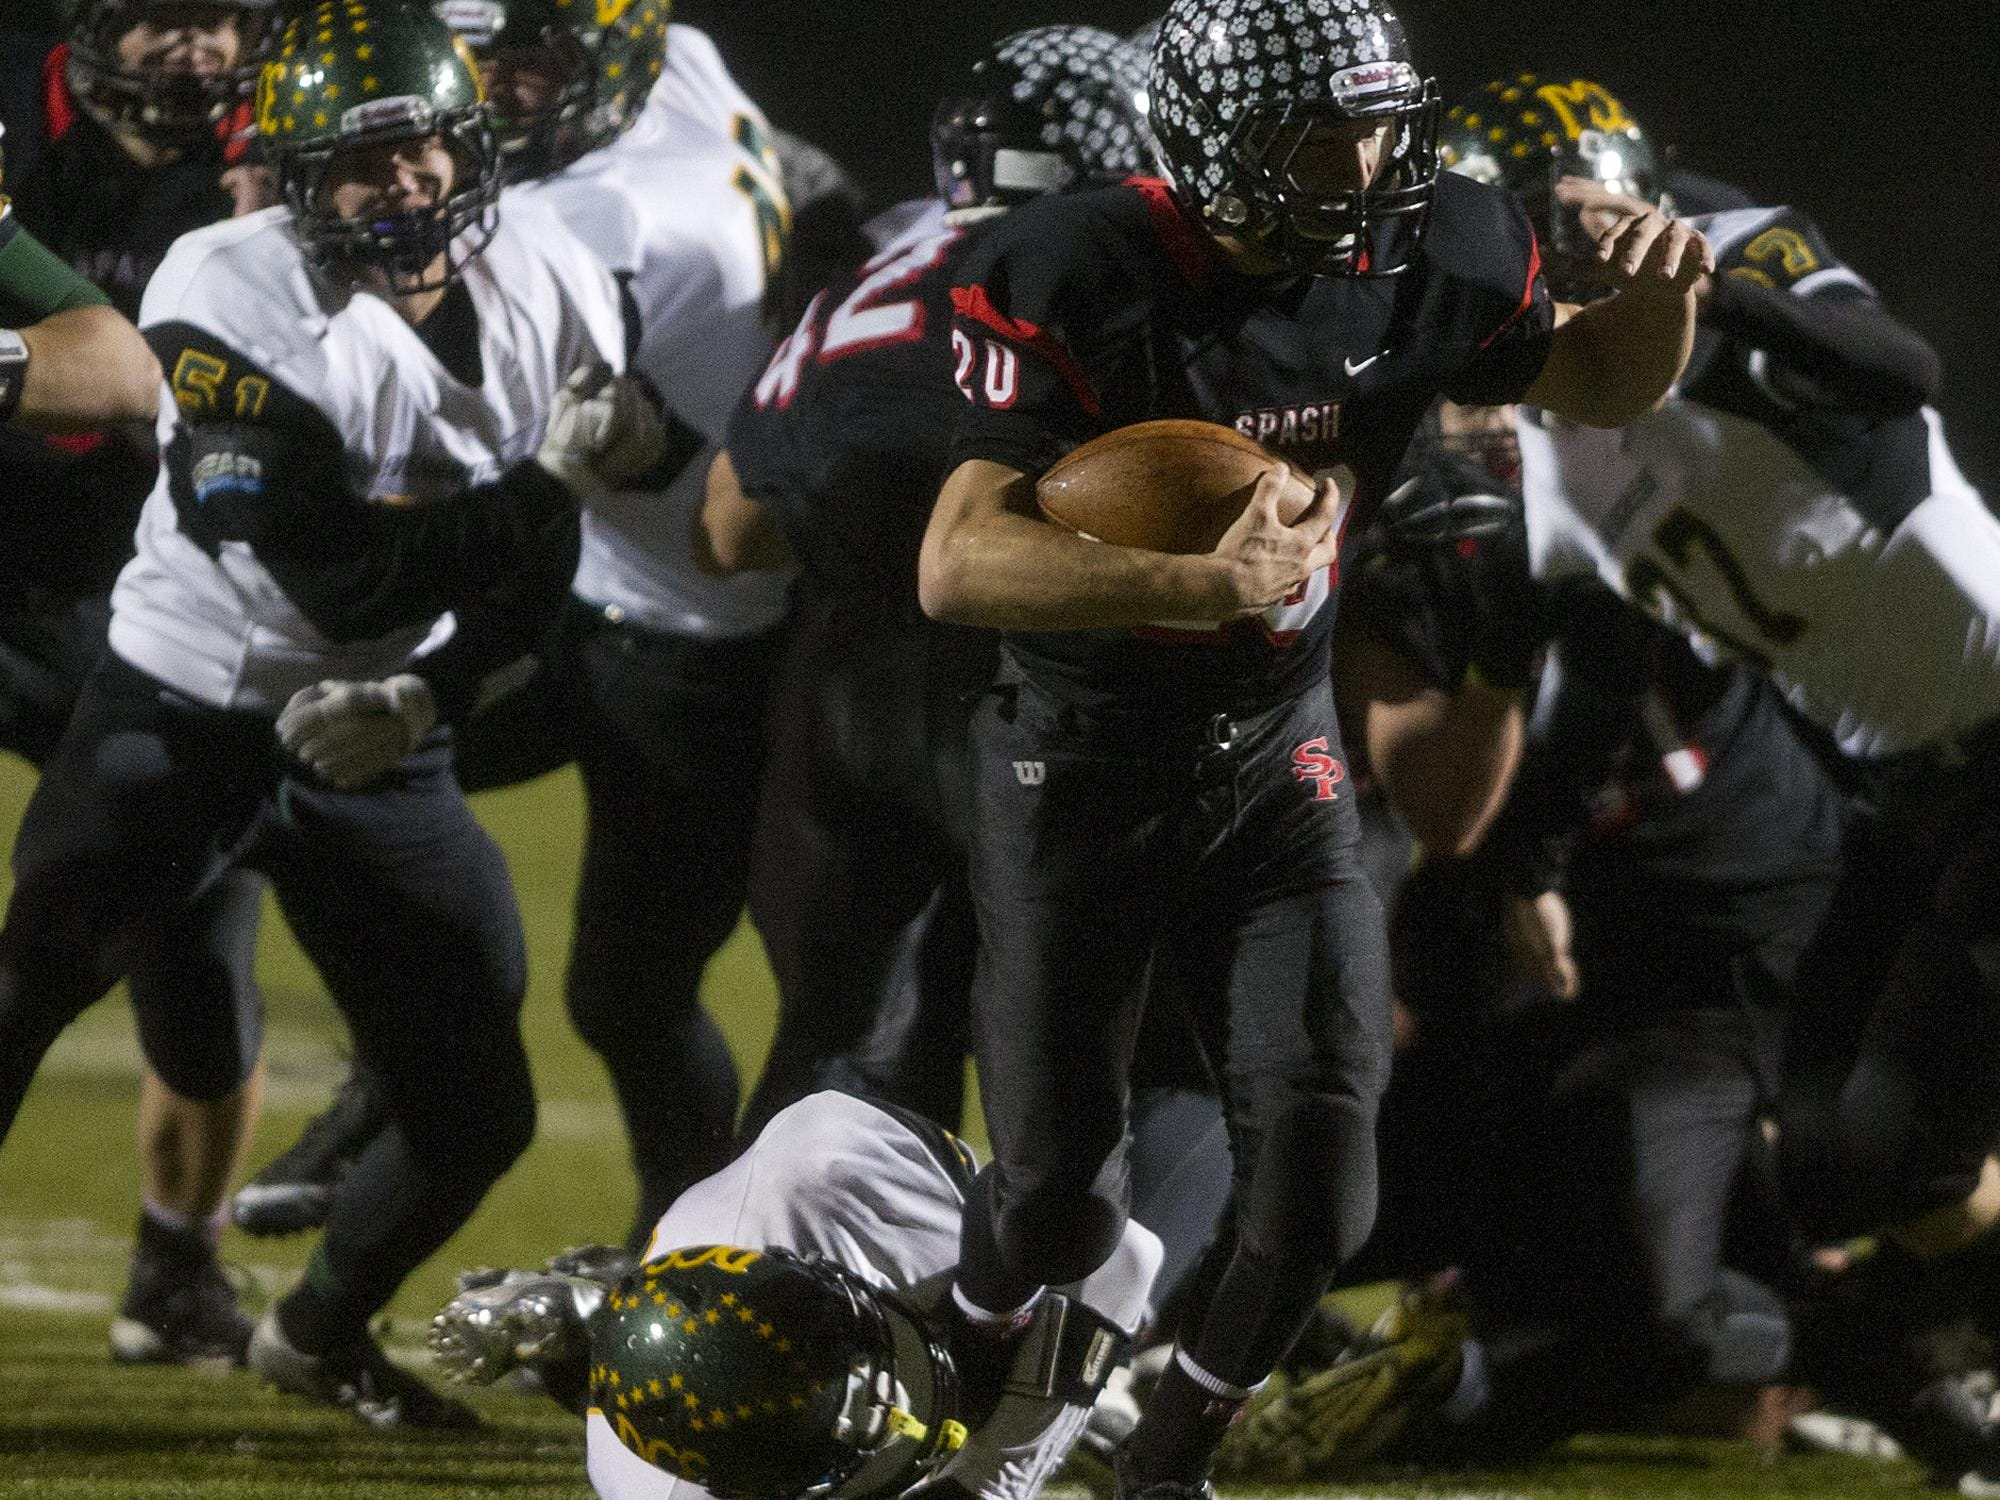 Stevens Point Area Senior High's Gus Turner-Zick carries the ball Friday during a WIAA Division 1 playoff game against D.C. Everest at Goerke Field in Stevens Point.